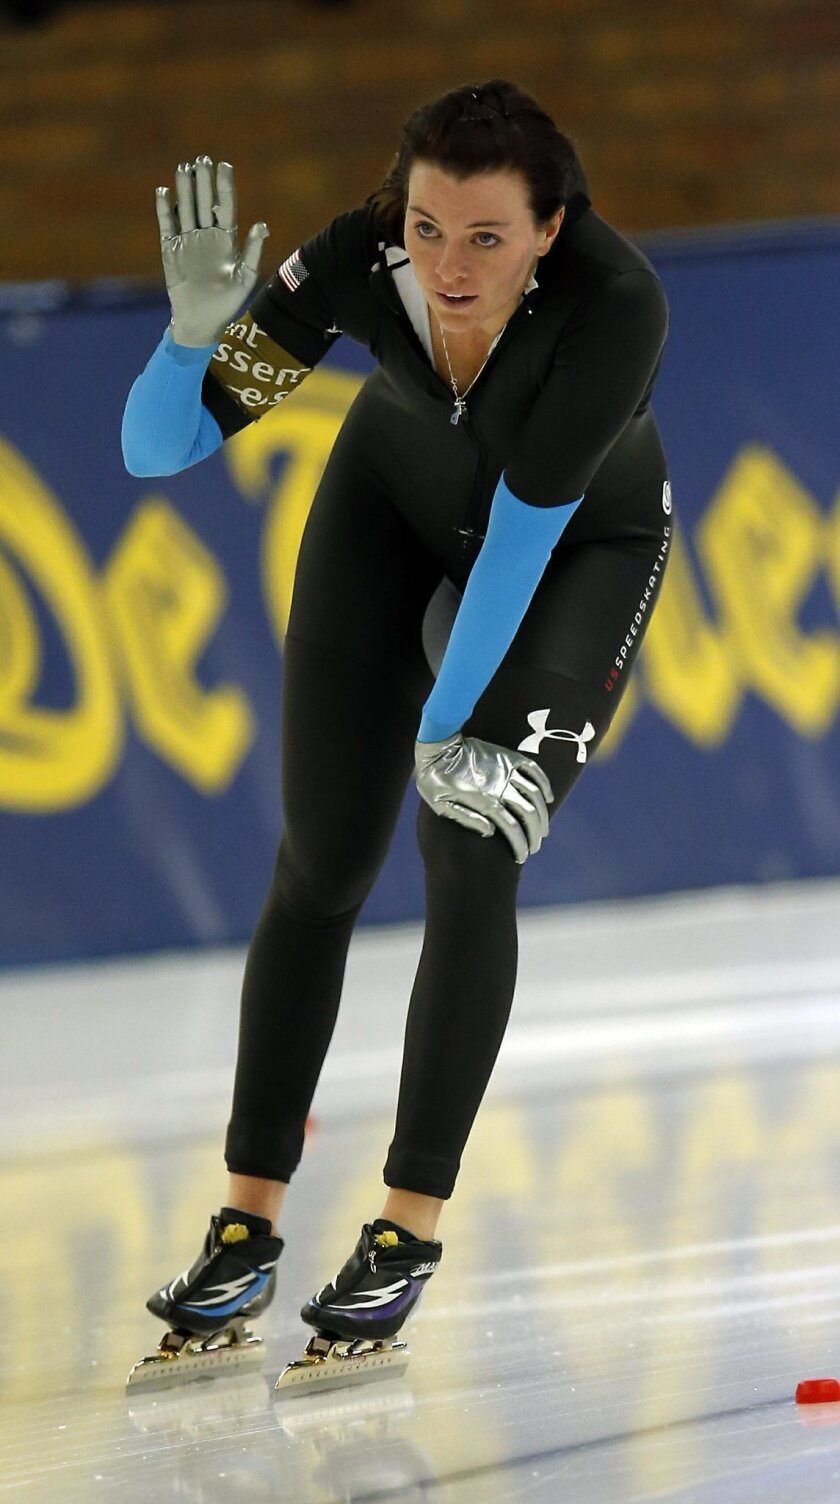 First placed Heather Richardson from the US celebrates after the Women's 1,000 meters race of the speed skating World Cup, in Berlin, Germany, Sunday, Dec. 8, 2013. (AP Photo/Michael Sohn)